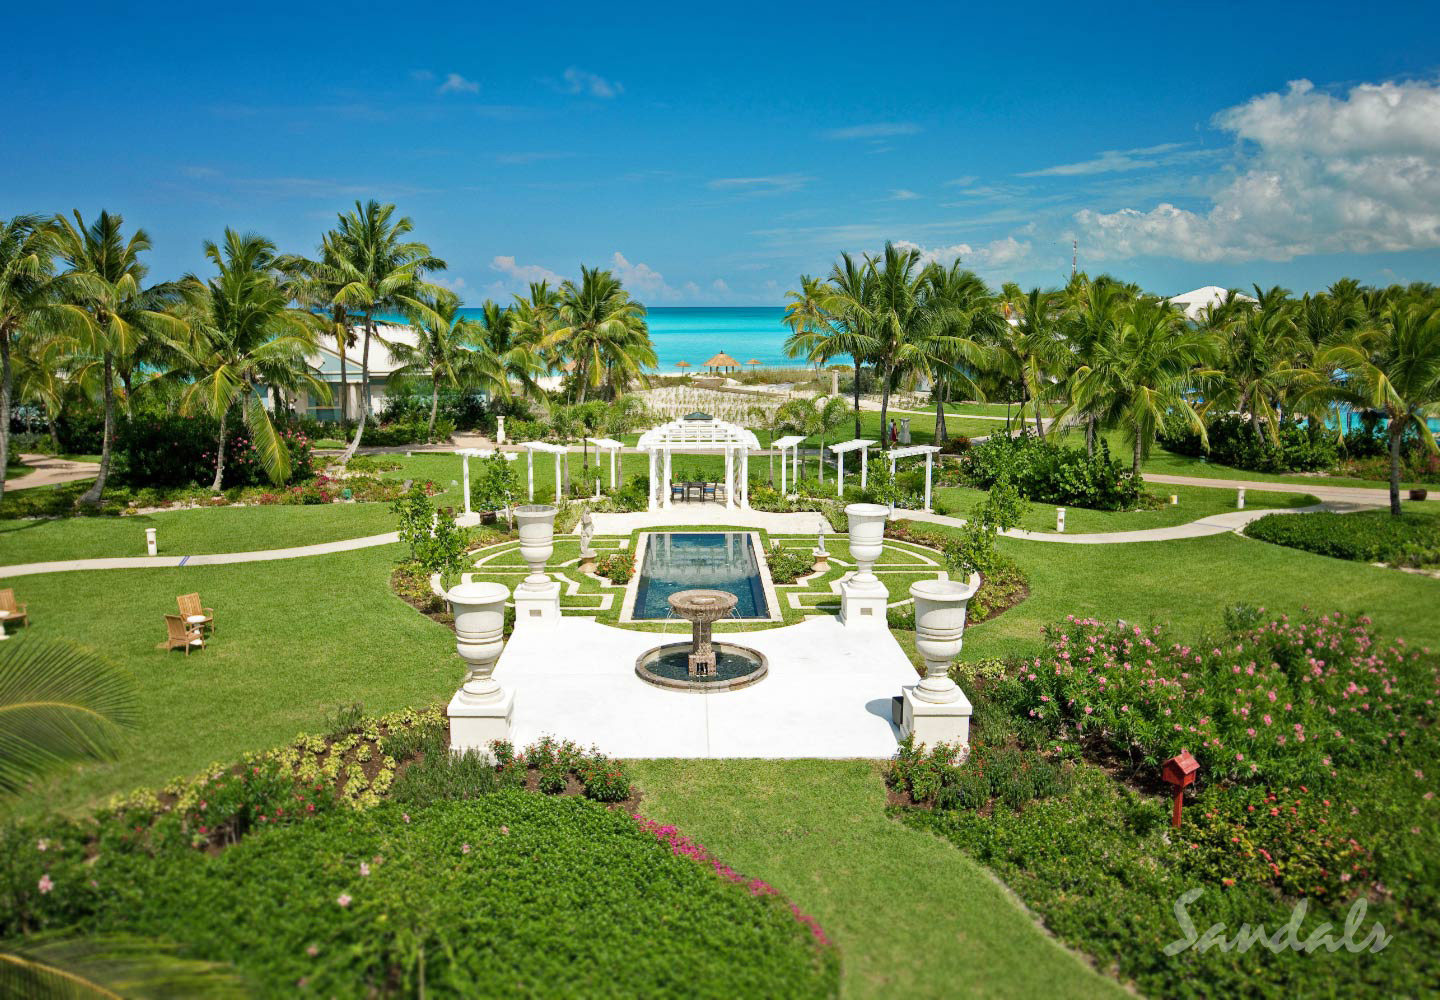 Travel Agency All-Inclusive Resort Sandals Emerald Bay 099